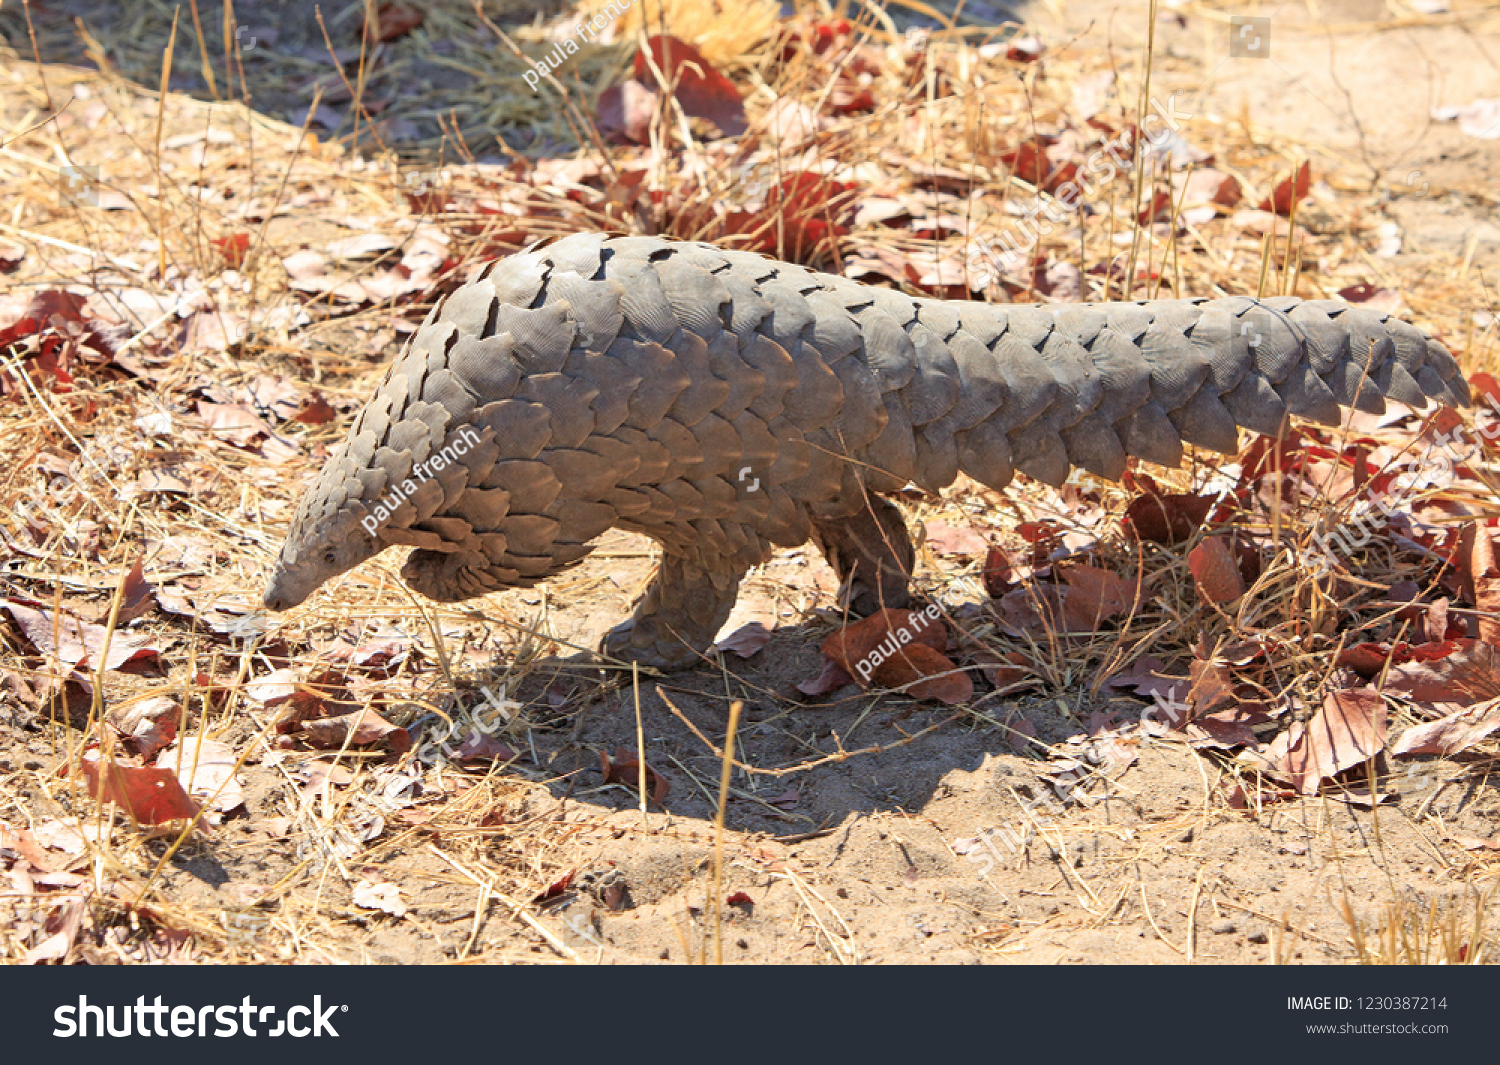 Critically endangered Pangolin walking in the bush- Scientific name Manis - it was sighted in the african bush in Hwange National Park, Zimbabwe.  These are most traffiked animal in the world